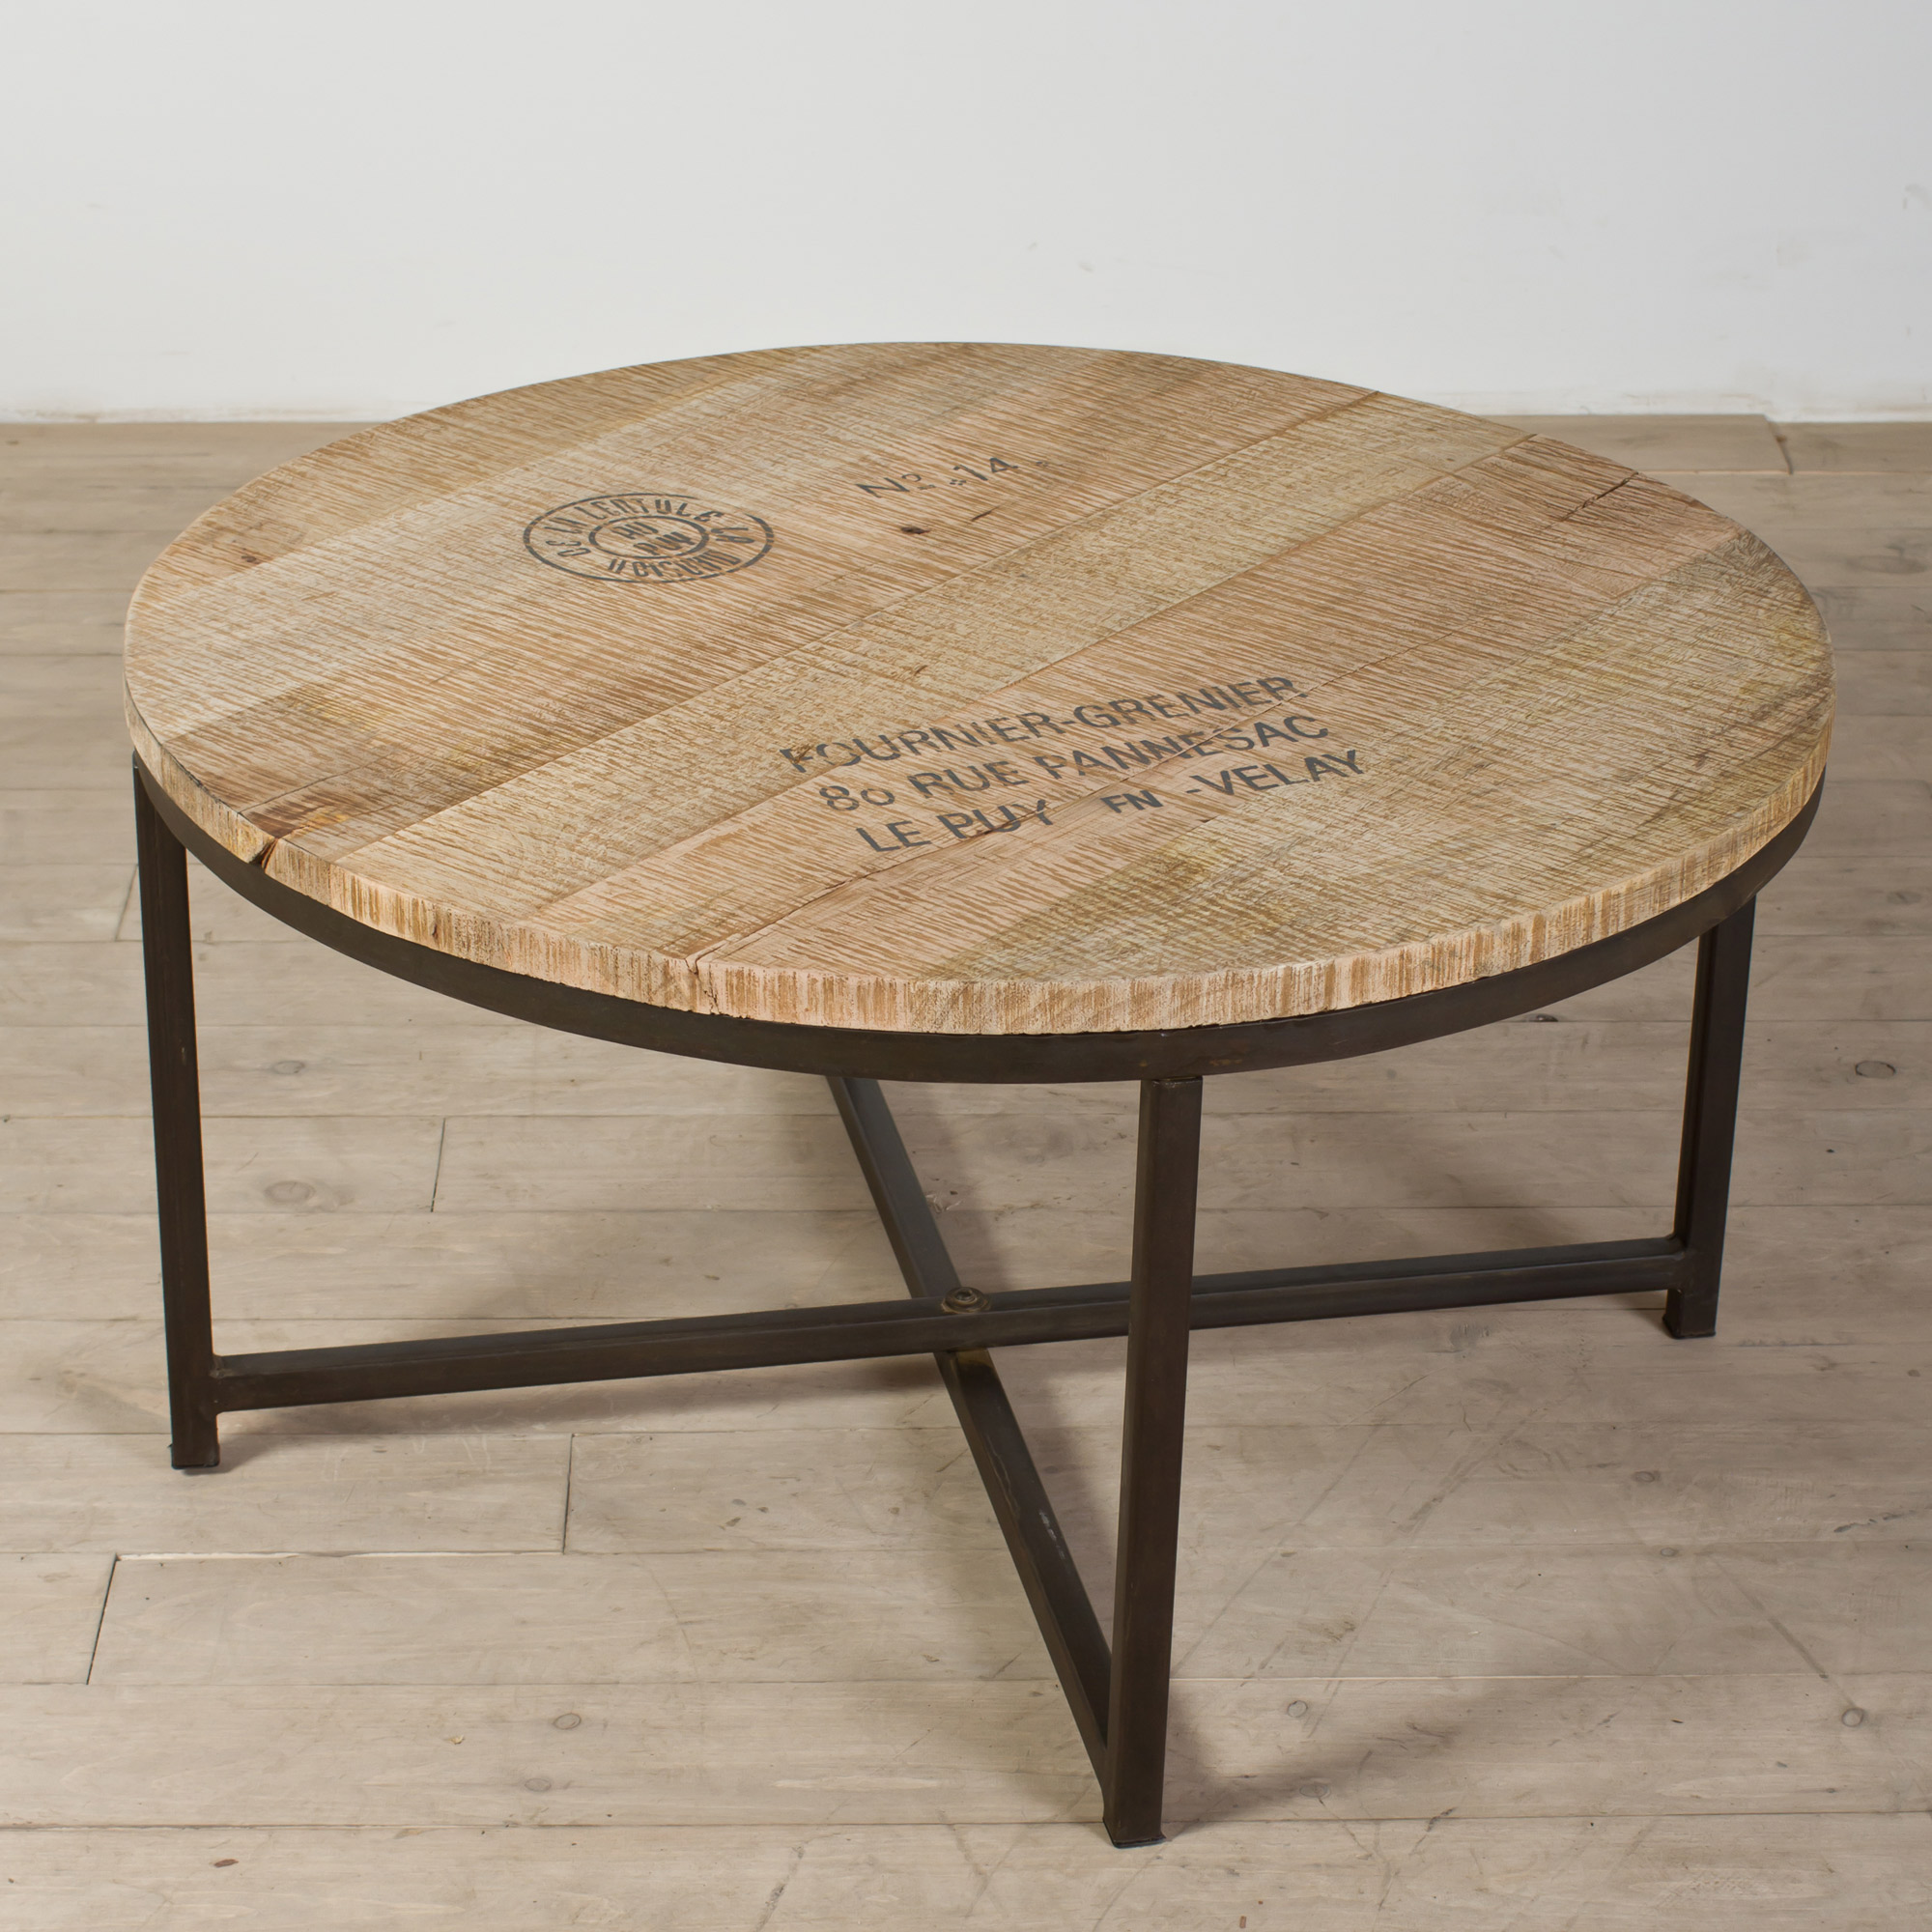 Small round oak coffee table uk rascalartsnyc small round oak coffee table uk rascalartsnyc geotapseo Choice Image